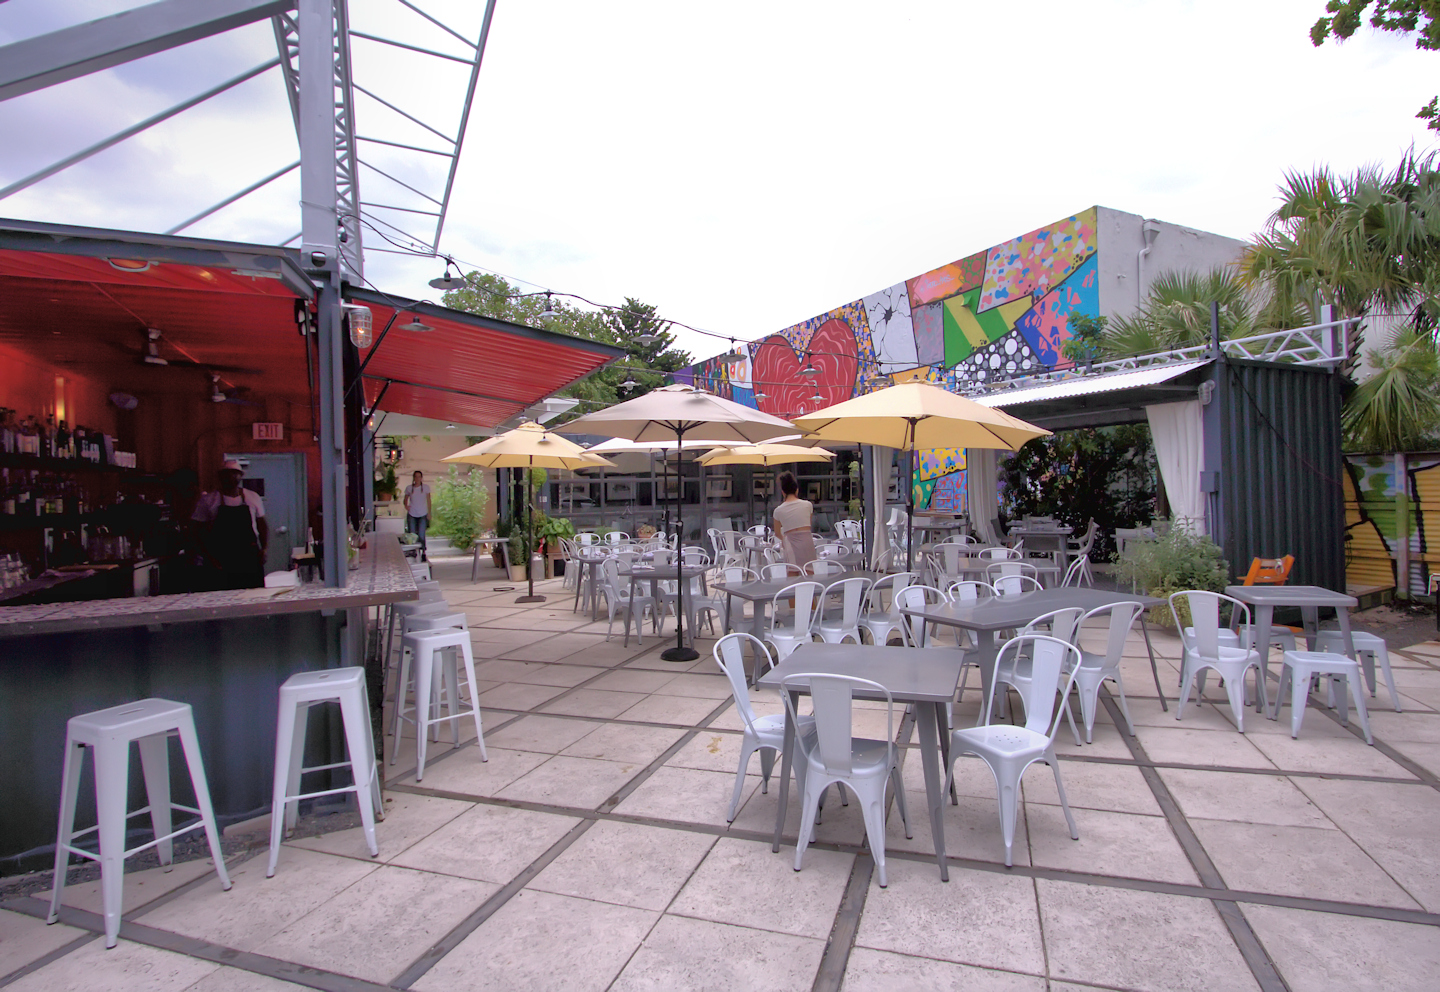 Charcoal Garden Bar and Grill